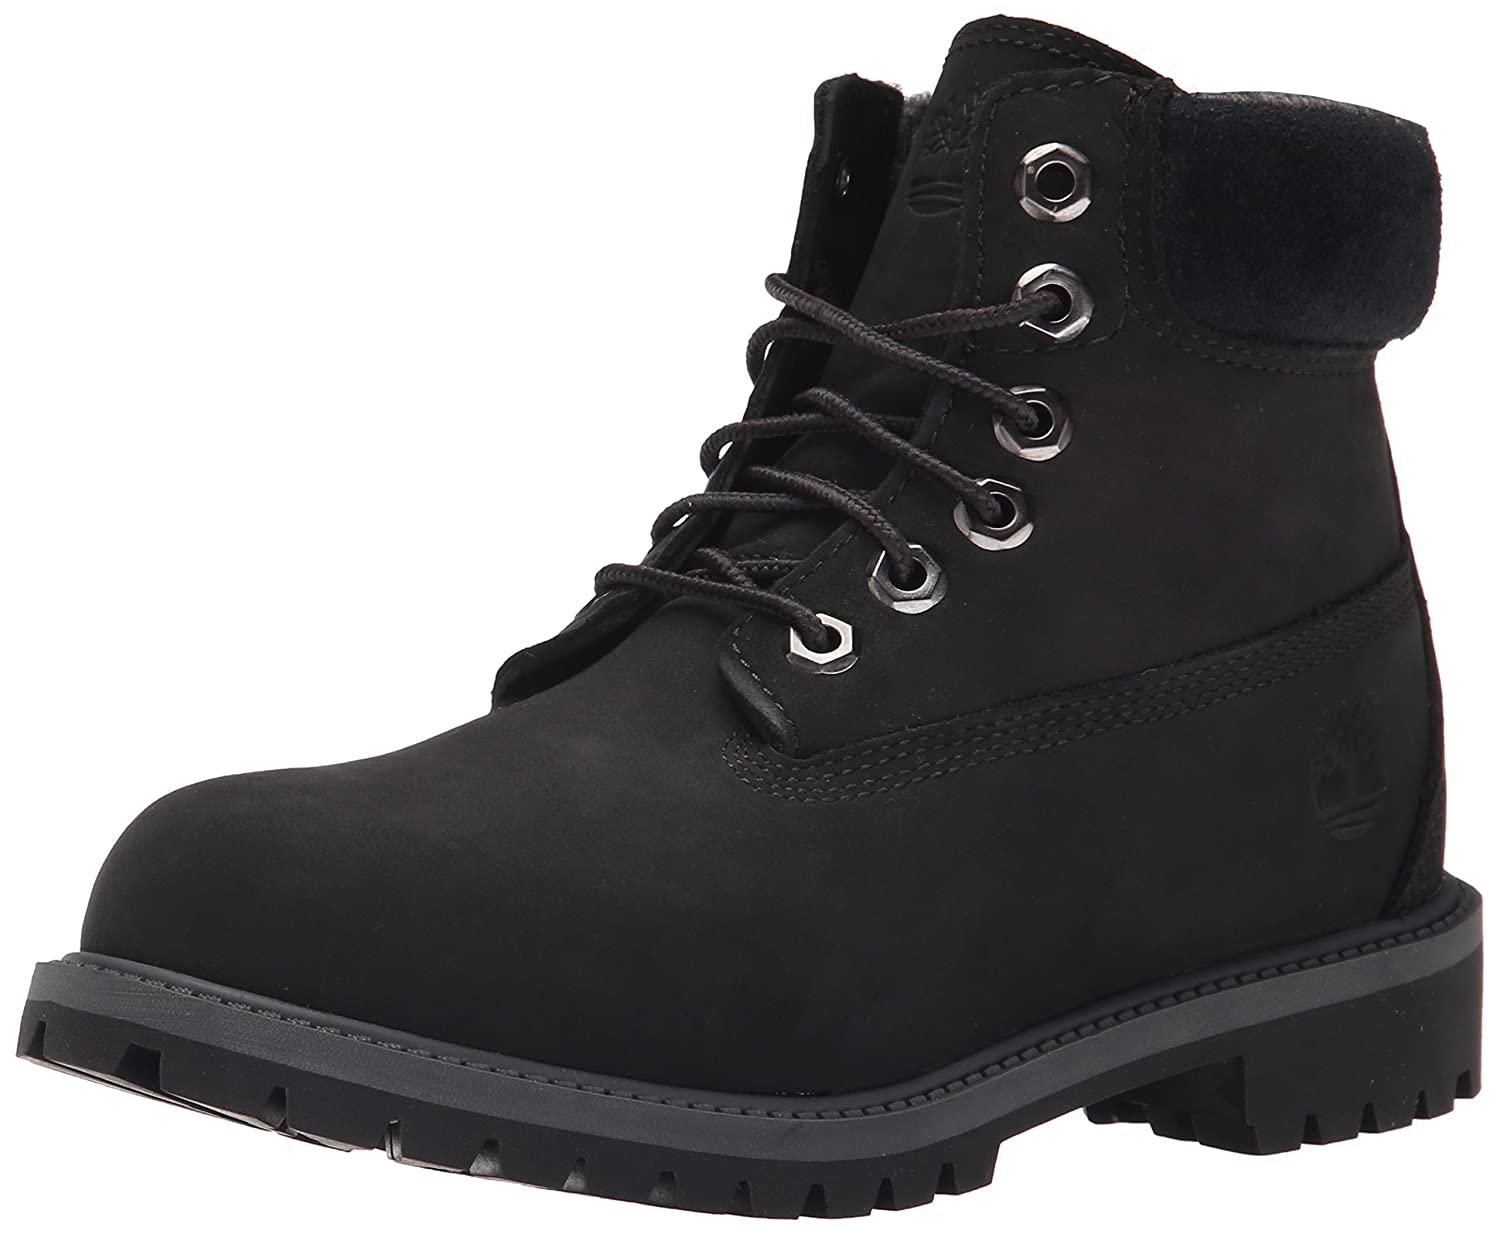 Timberland - Mixte Premium Timberland Boot - Mixte Junior - Noir (Nubuck) 00afe53 - robotanarchy.space